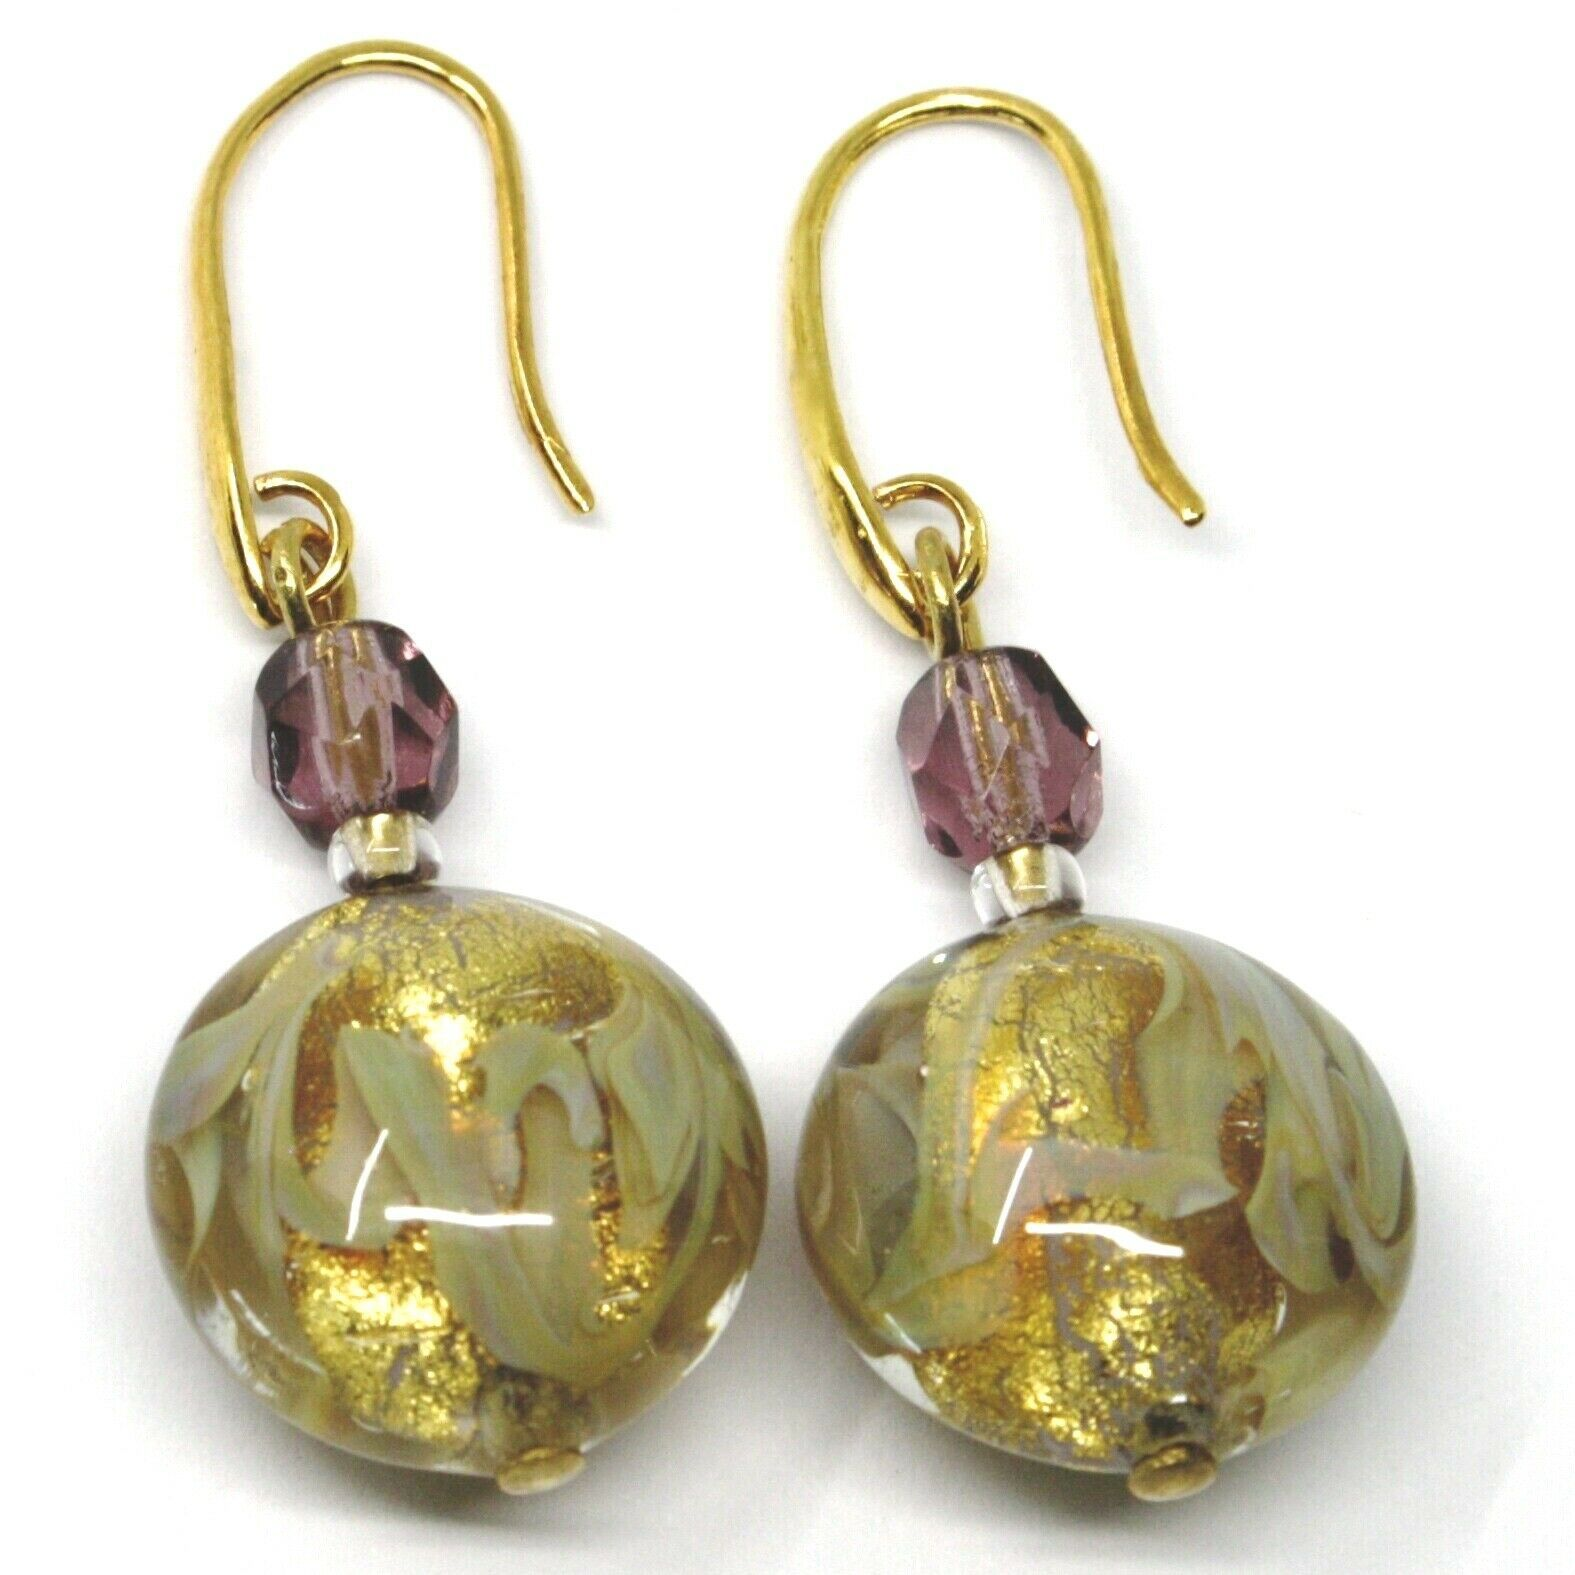 PENDANT HOOK EARRINGS PURPLE YELLOW DISC MURANO GLASS GOLD LEAF MADE IN ITALY